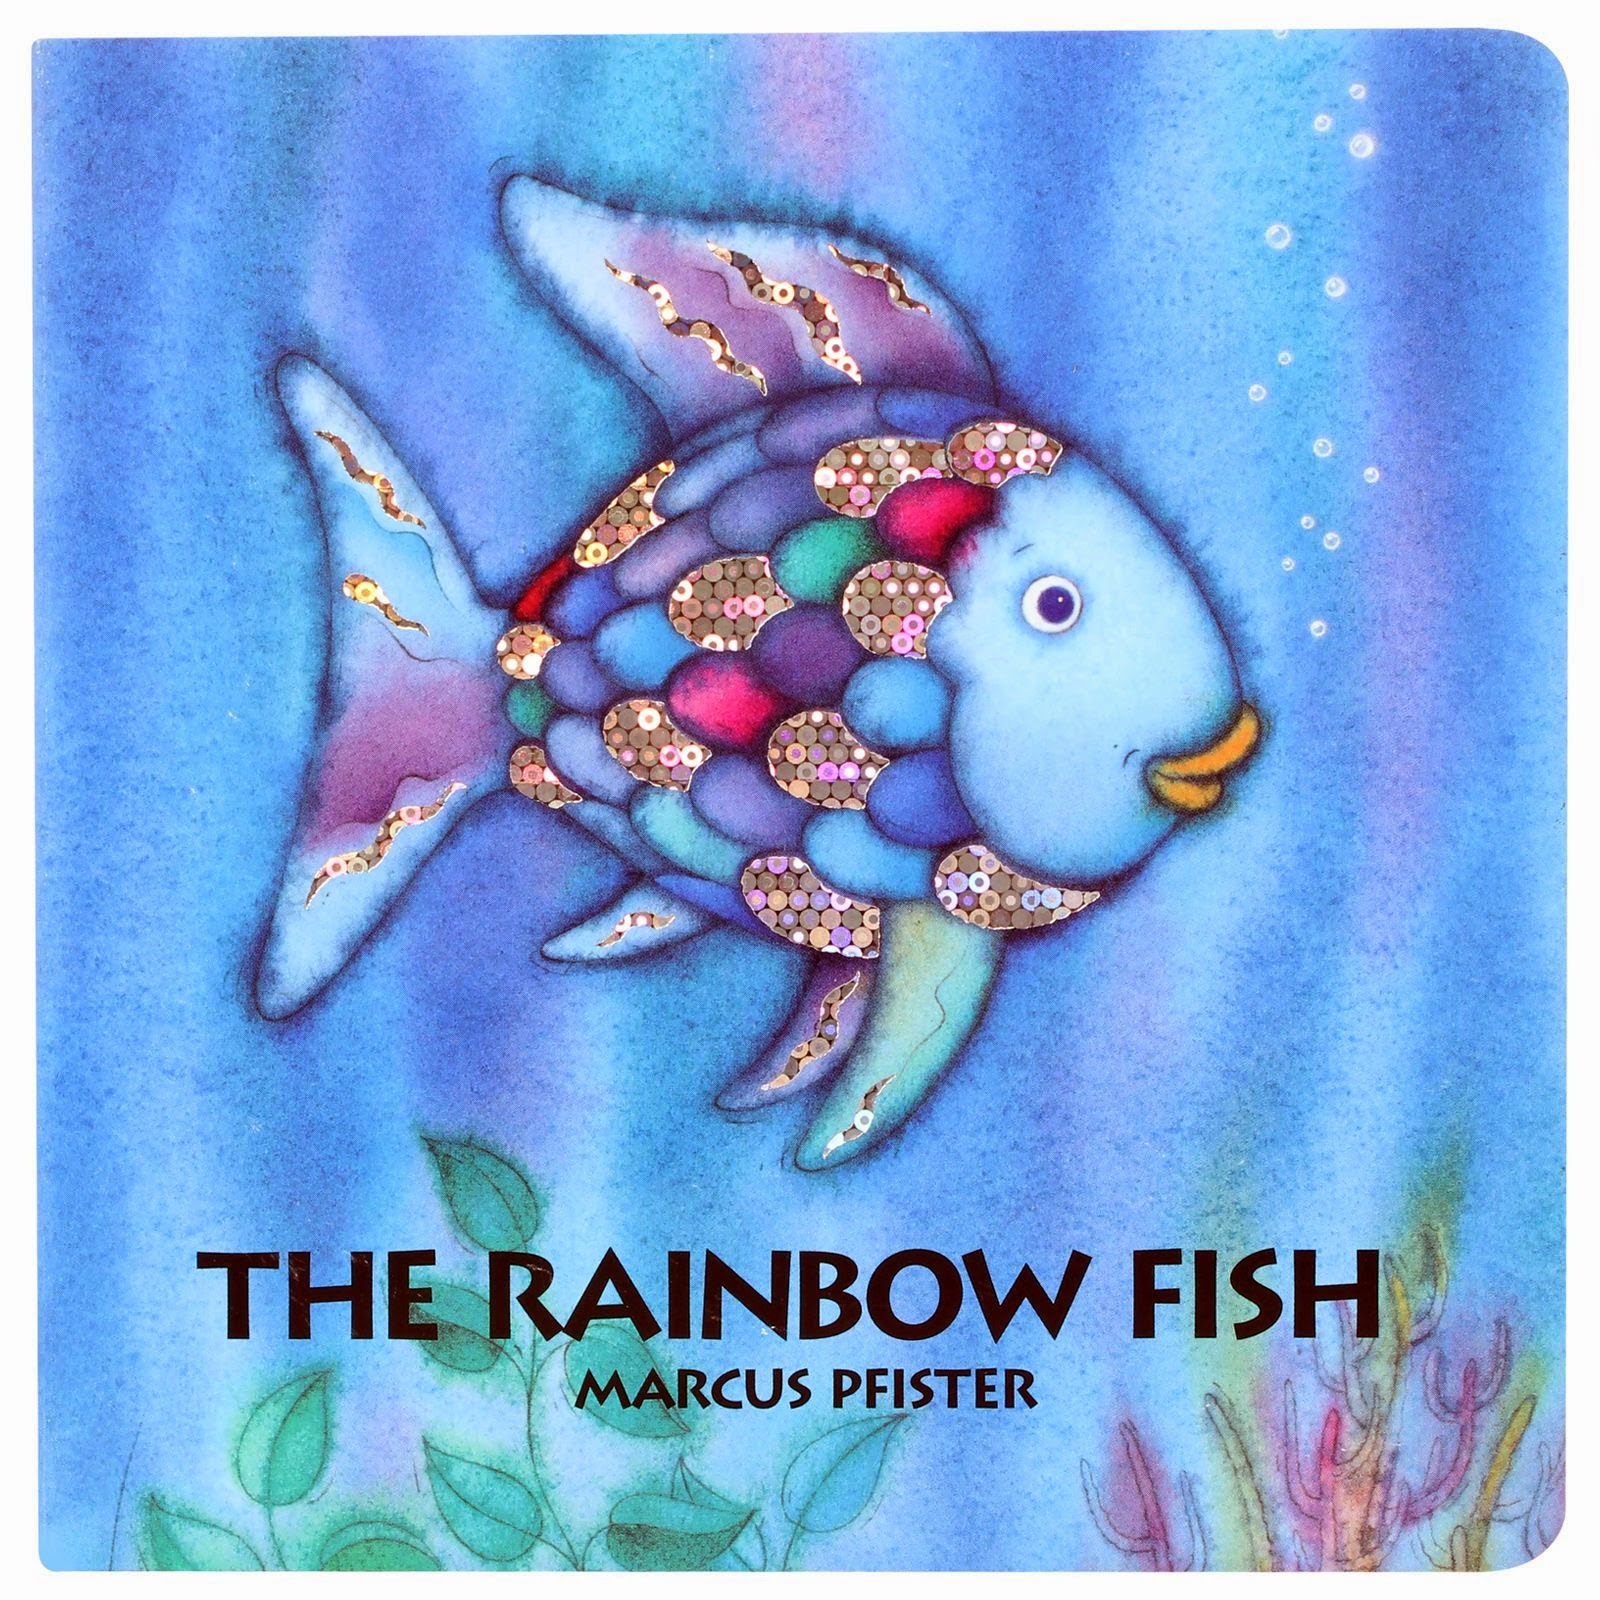 The Rainbow Fish Story